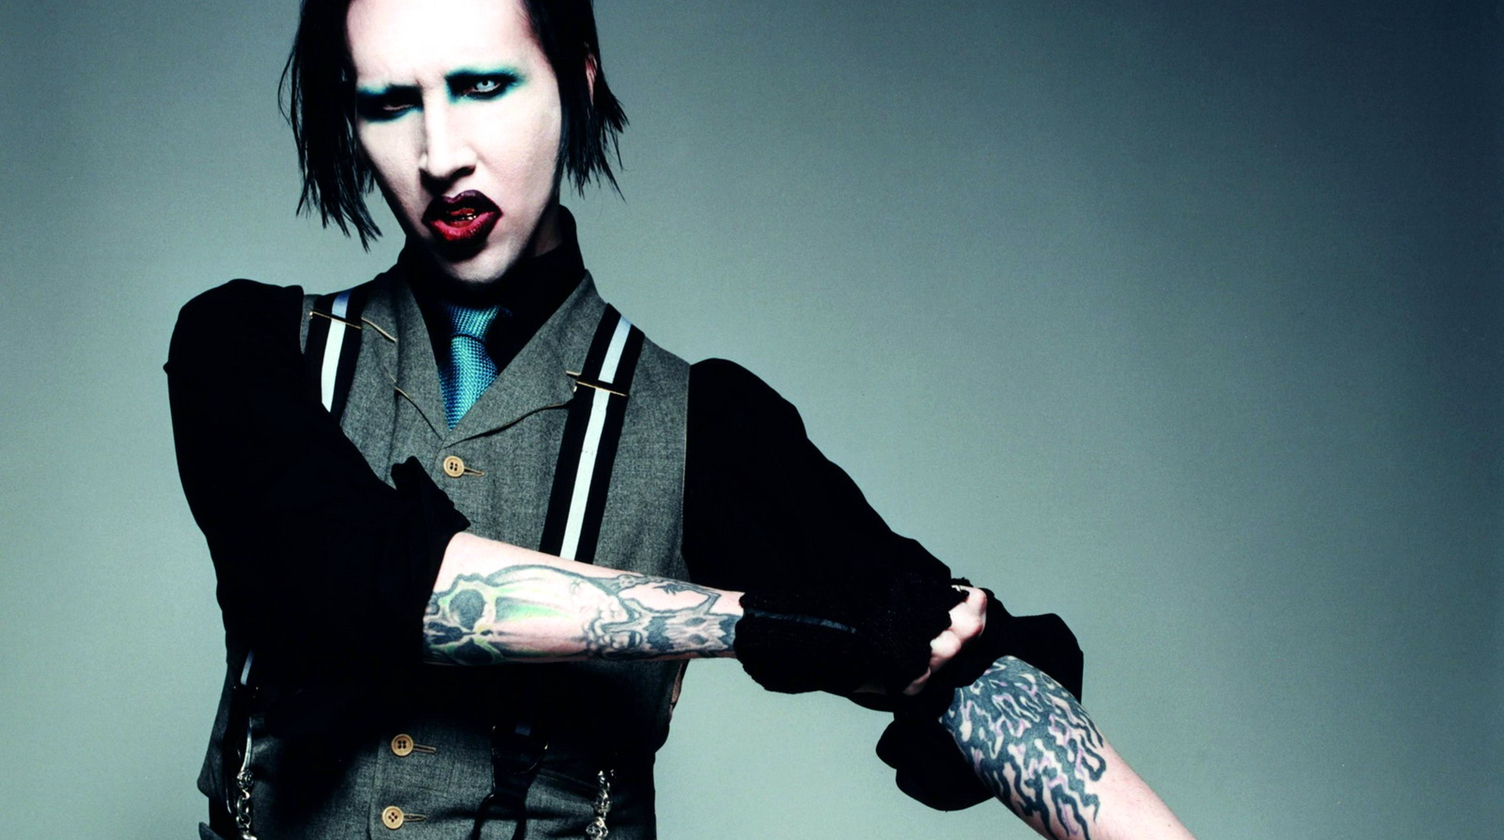 marilyn manson titles new album say10. Black Bedroom Furniture Sets. Home Design Ideas